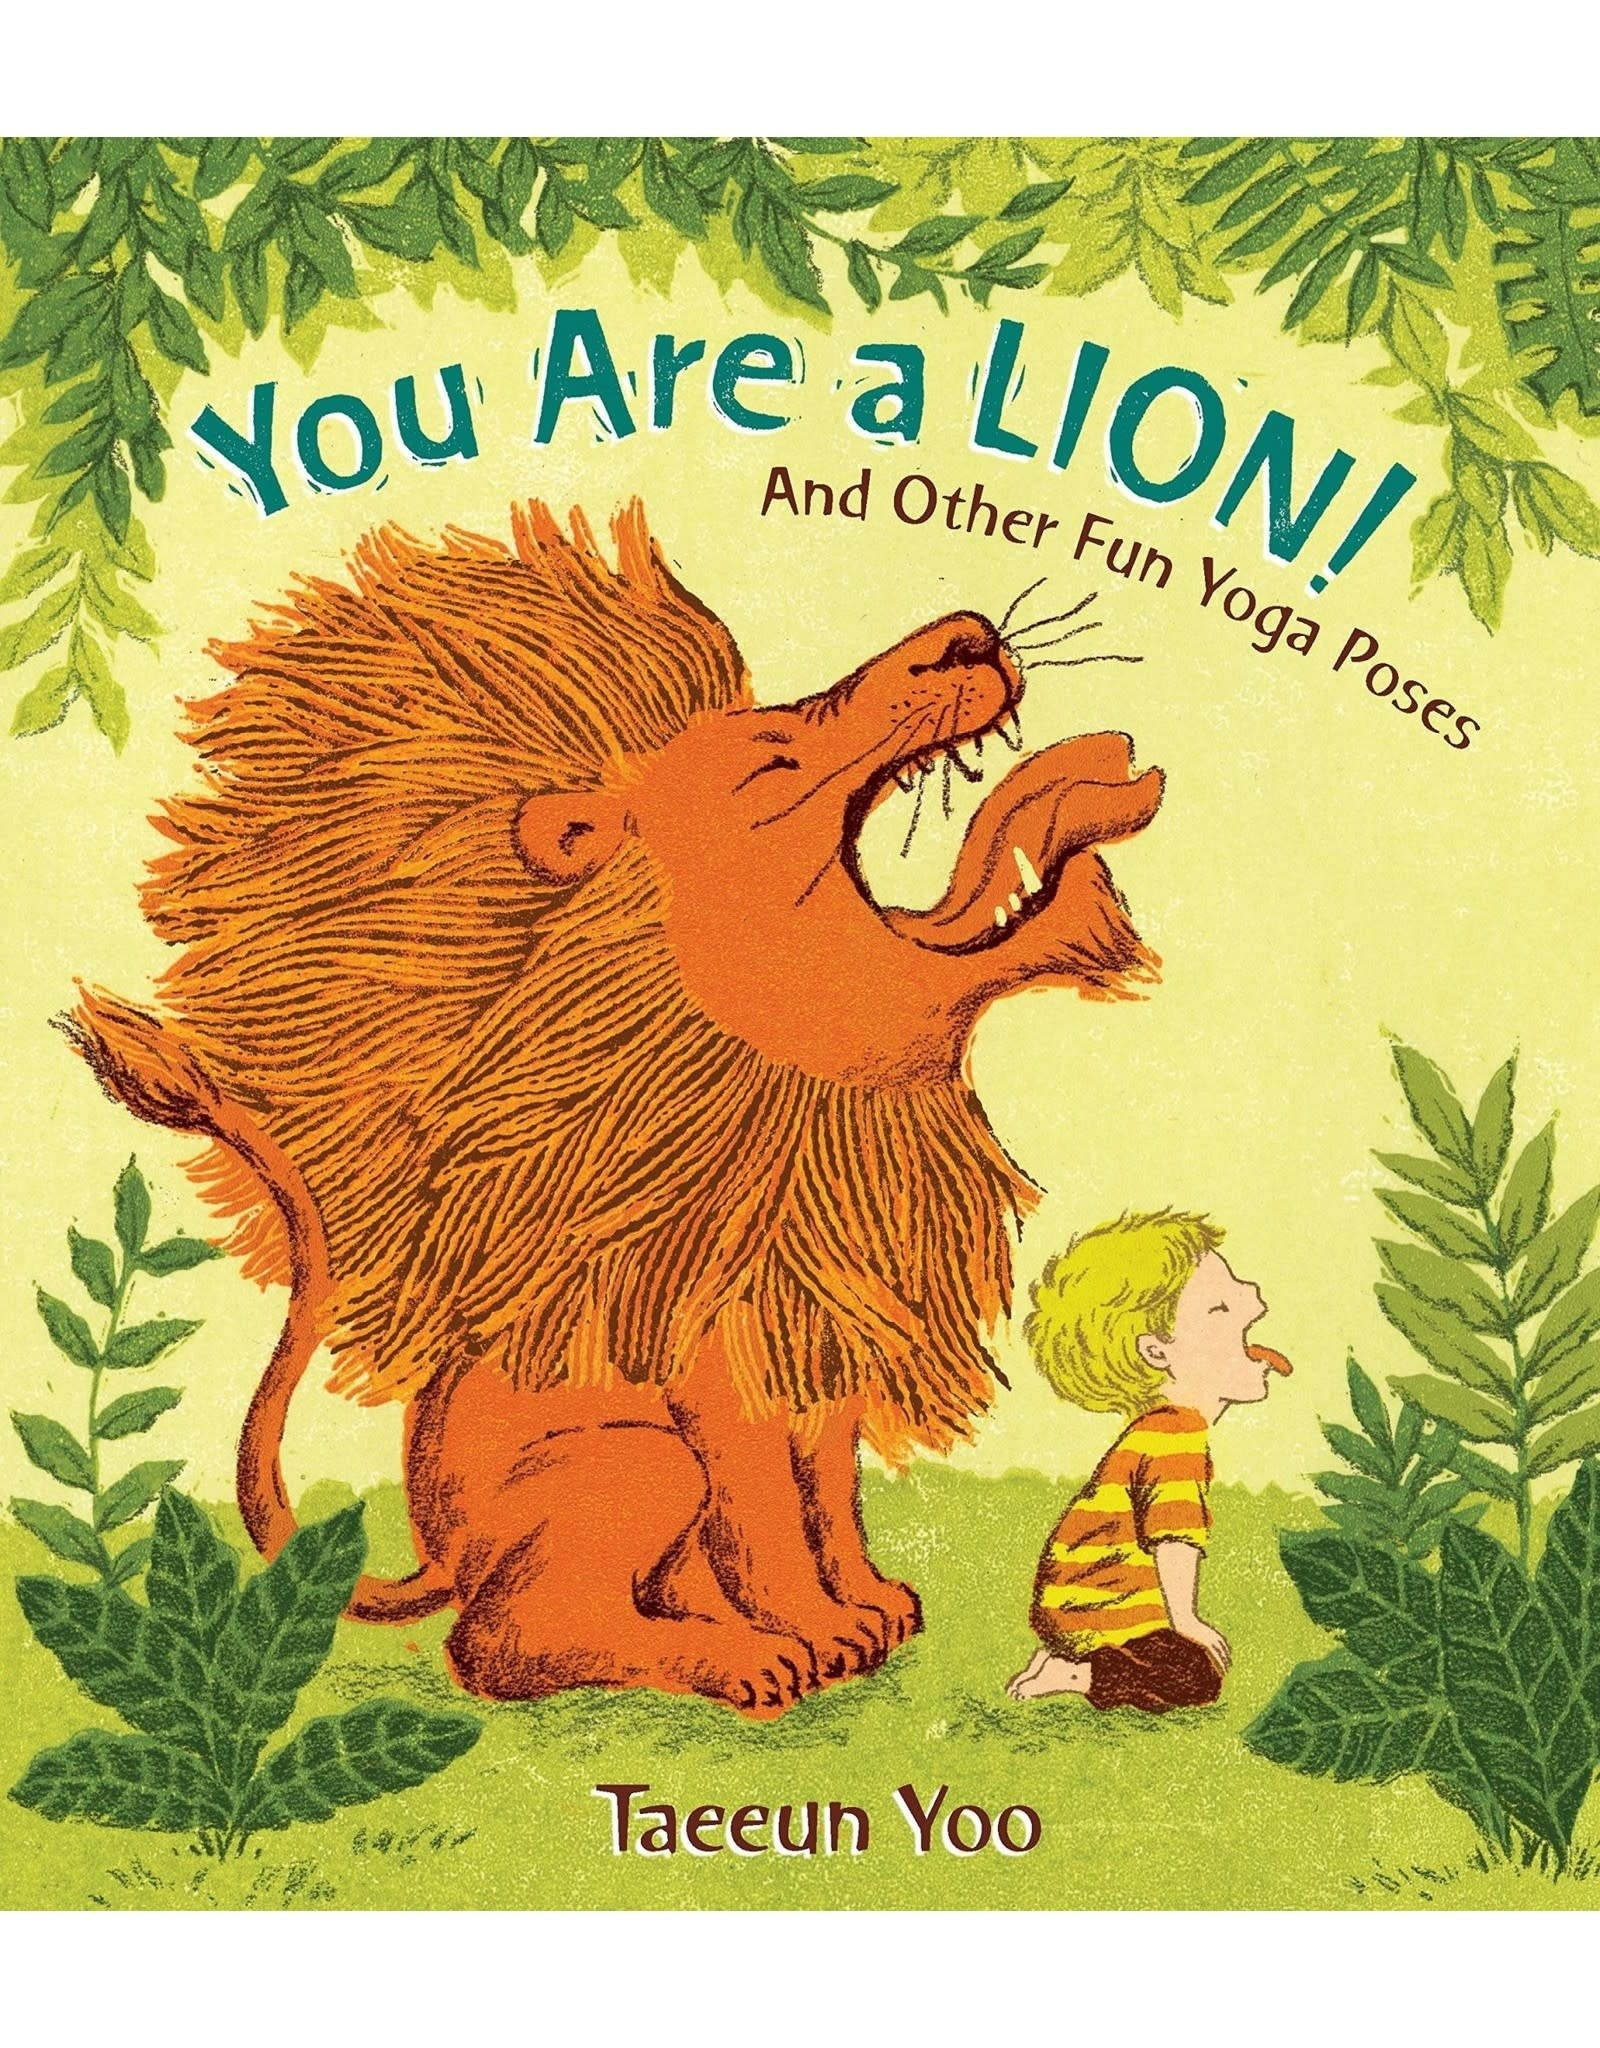 Ingram You are a Lion! And Other Fun Yoga Poses. Board book